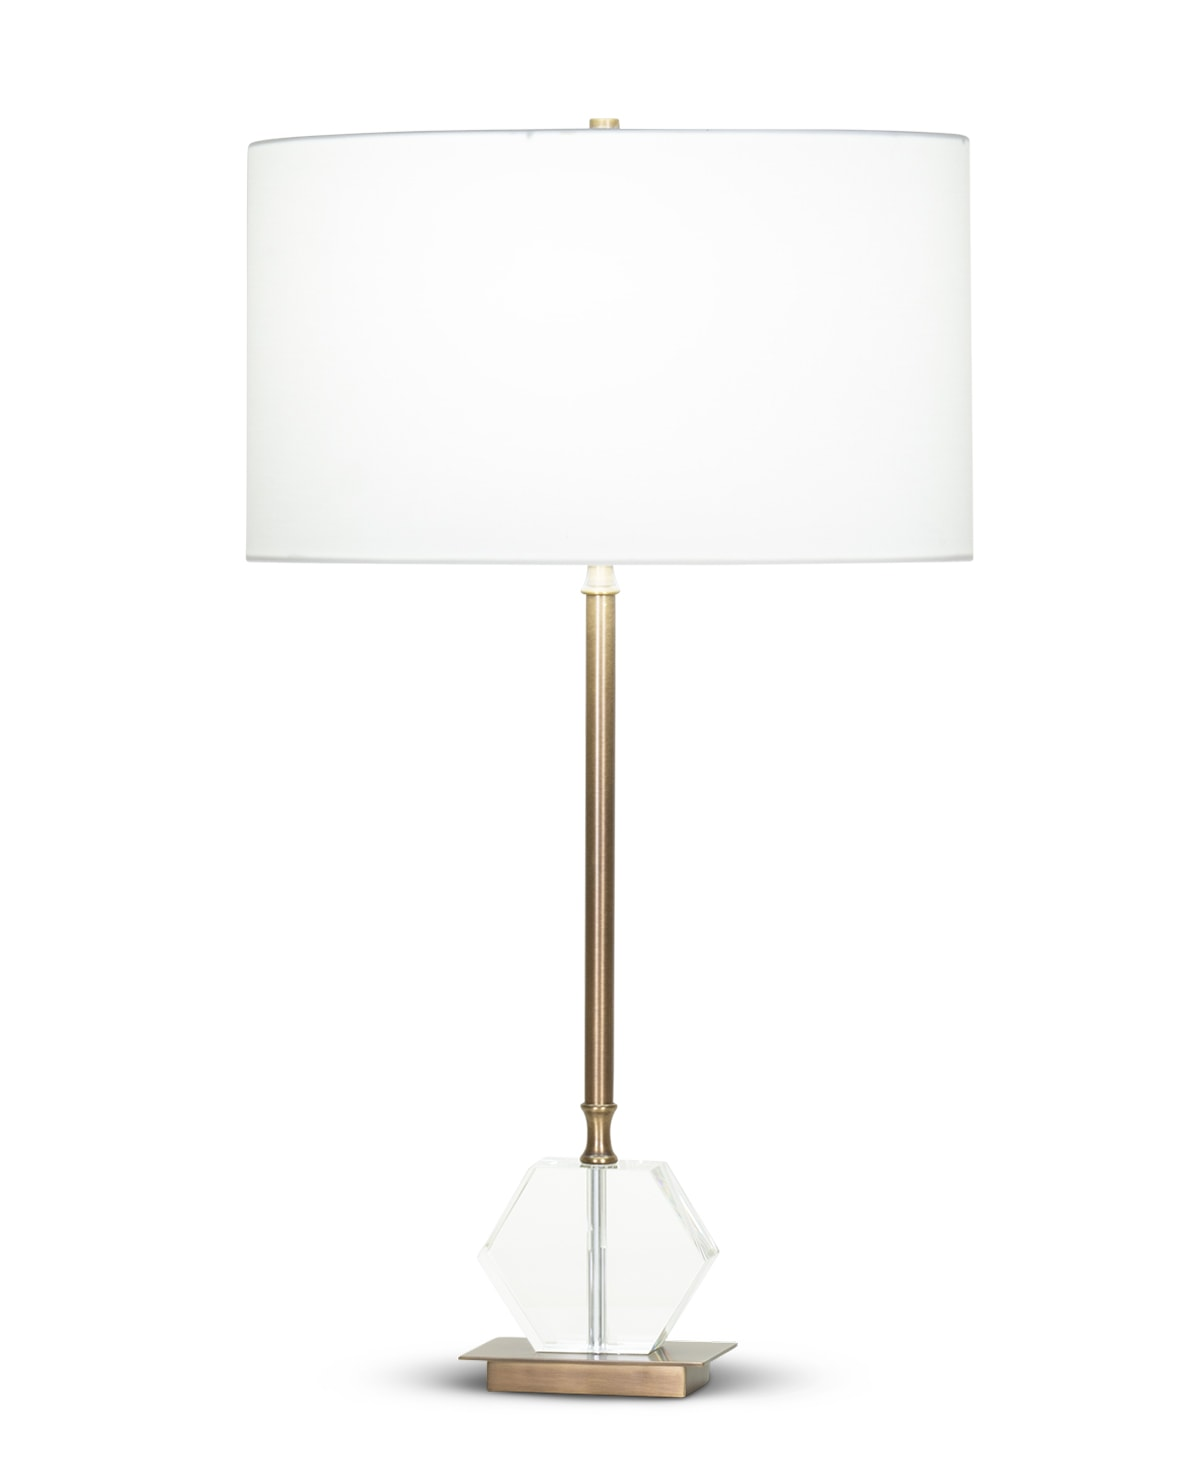 FlowDecor Henrietta Table Lamp in crystal and metal with antique brass finish and off-white cotton oval shade (# 4364)